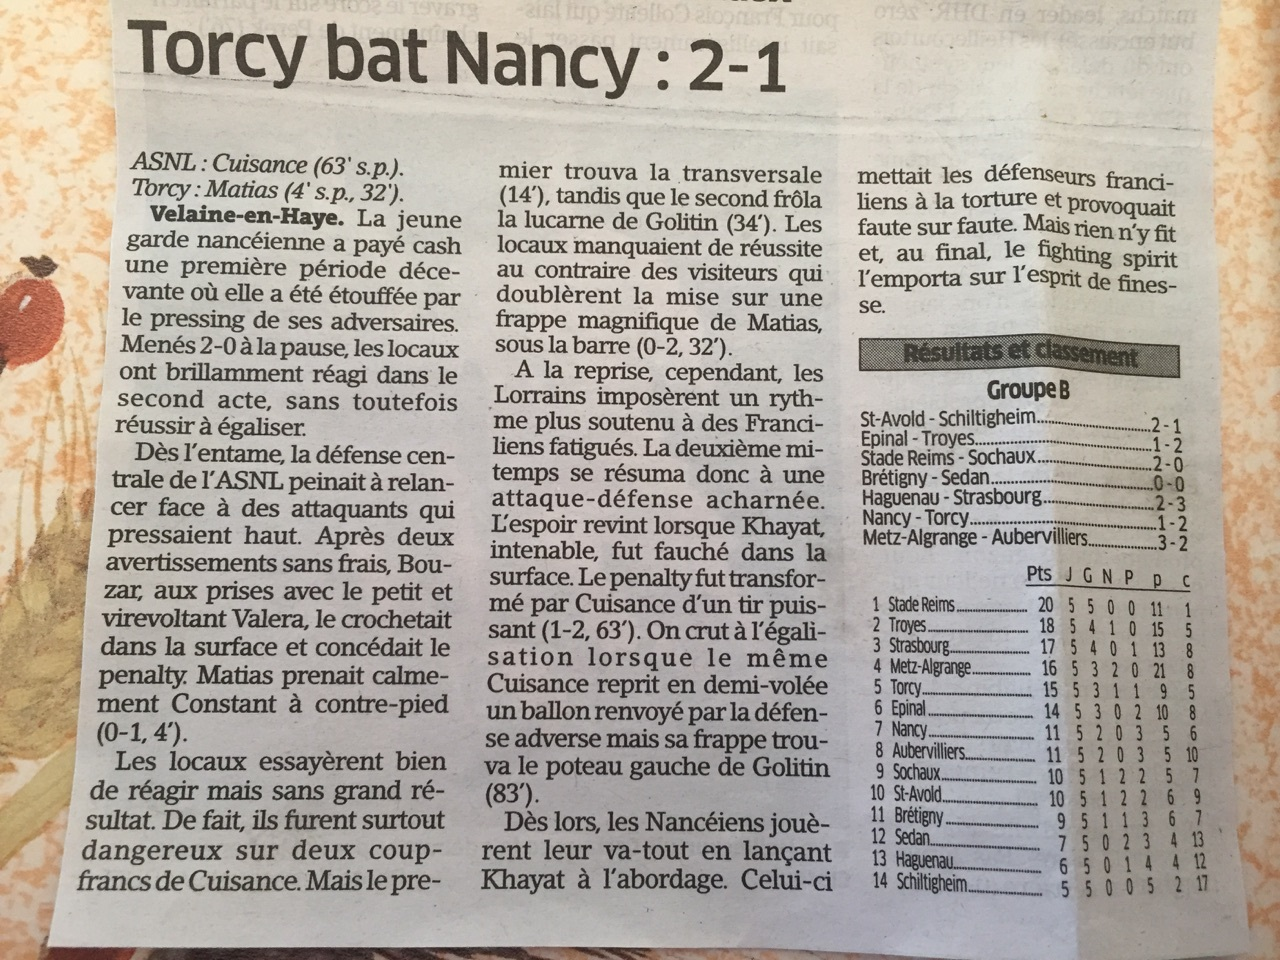 Torcy bat Nancy